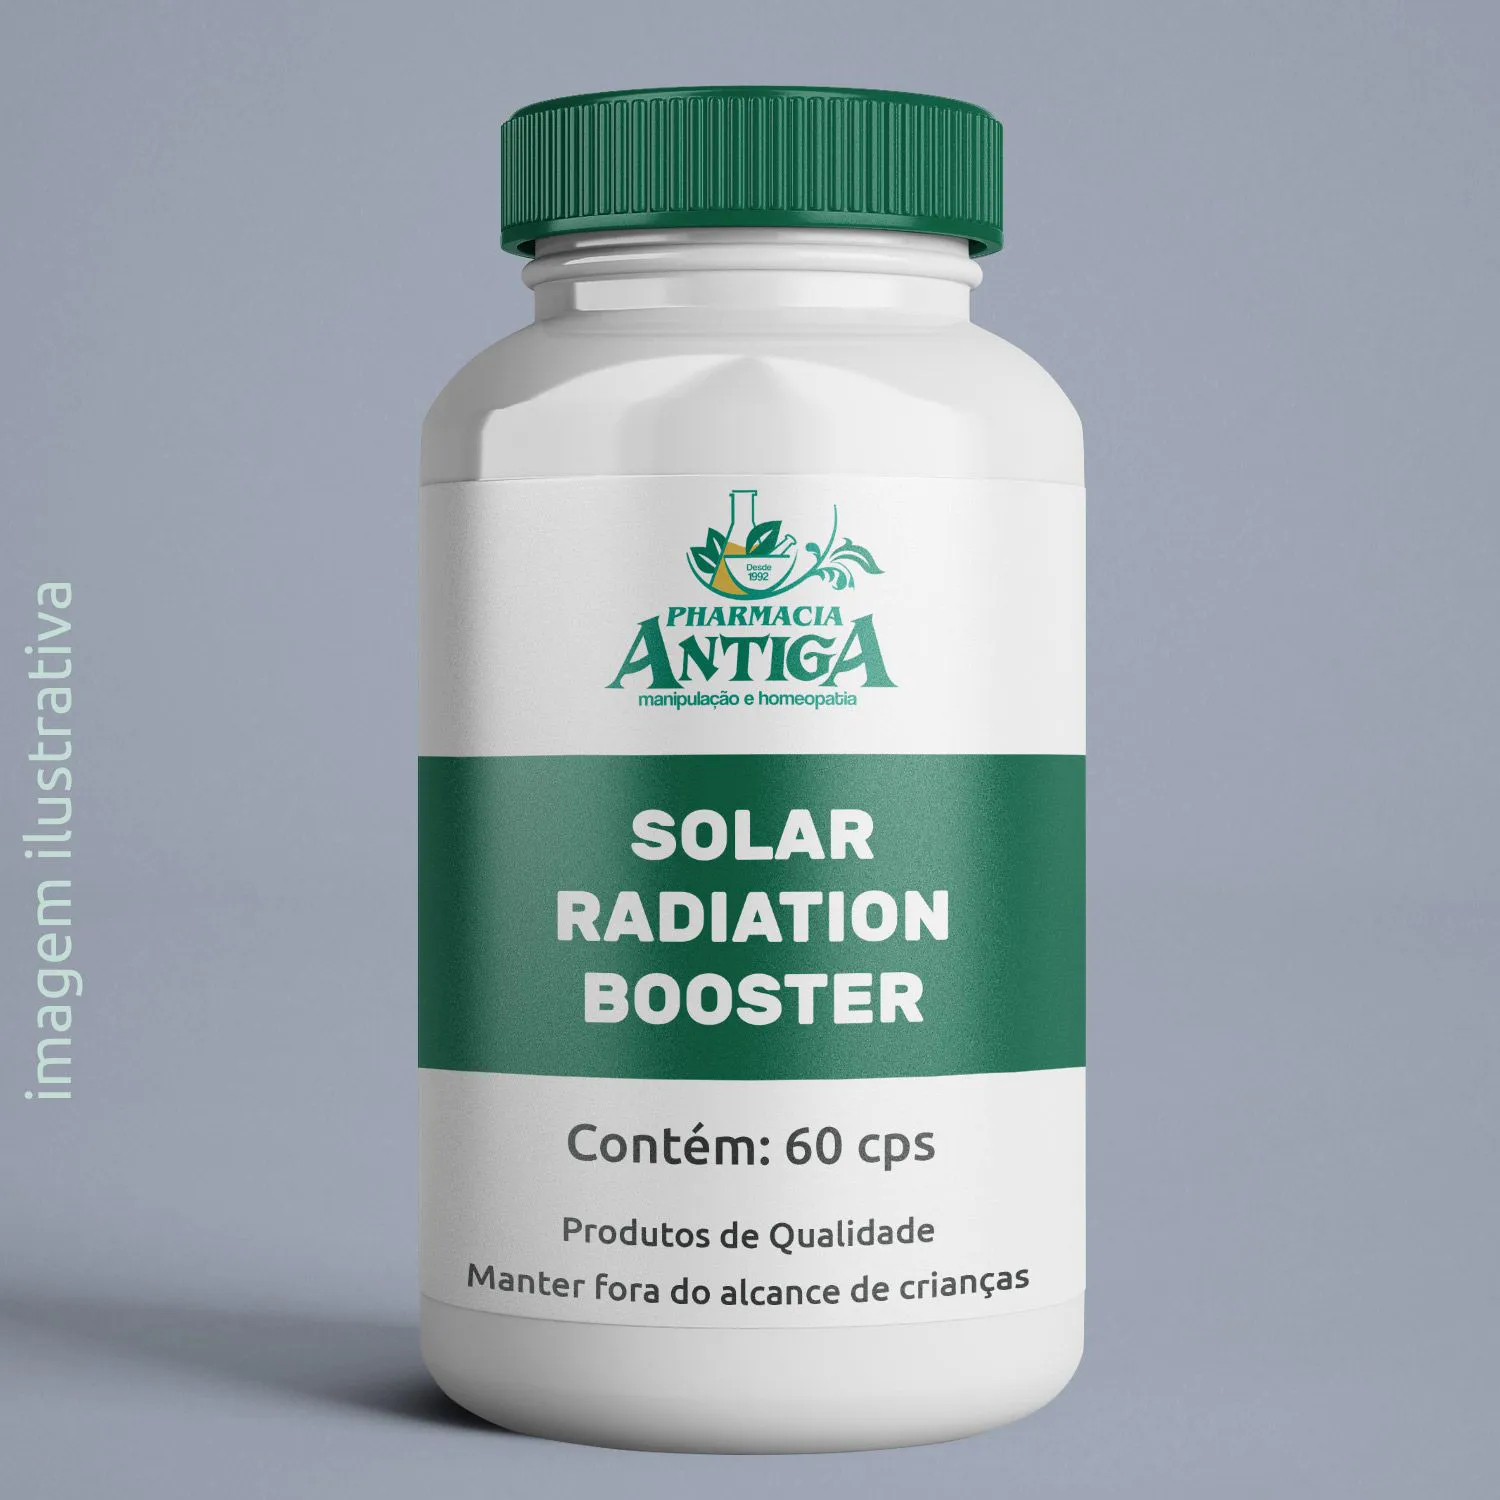 SOLAR RADIATION BOOSTER 60 cps